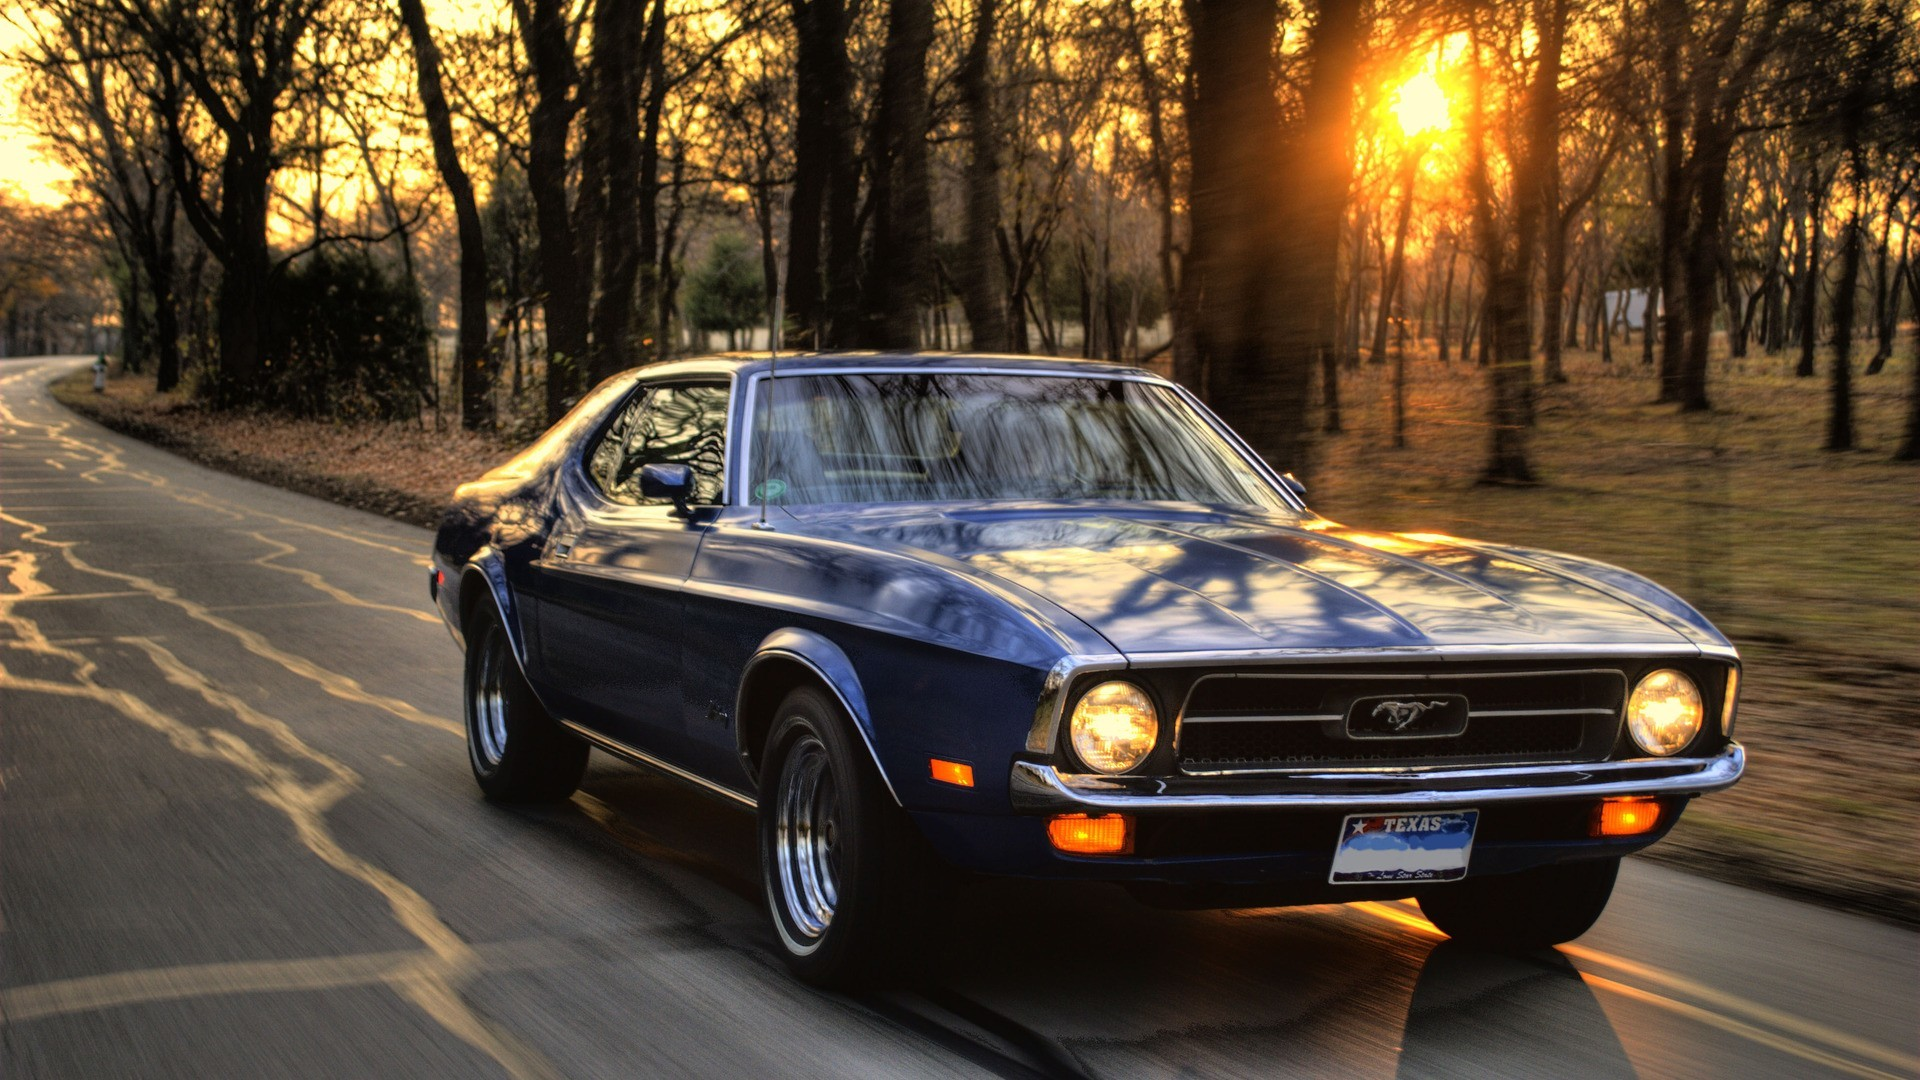 High Resolution American Muscle Car Wide Wallpaper Full Size .